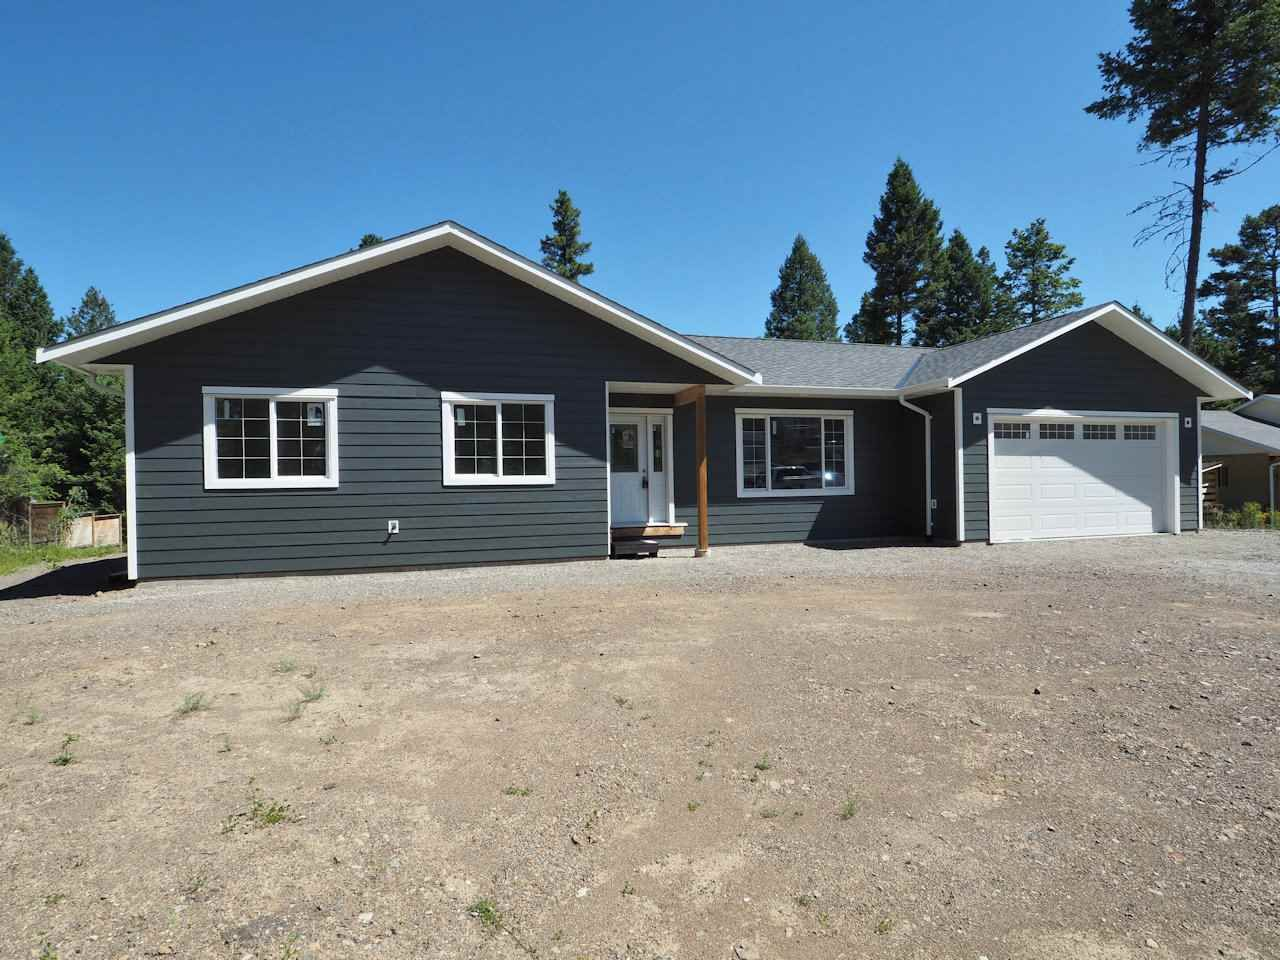 Photo 2: Photos: 5007 KYLLO Road in 108 Mile Ranch: 108 Ranch House for sale (100 Mile House (Zone 10))  : MLS®# R2464127